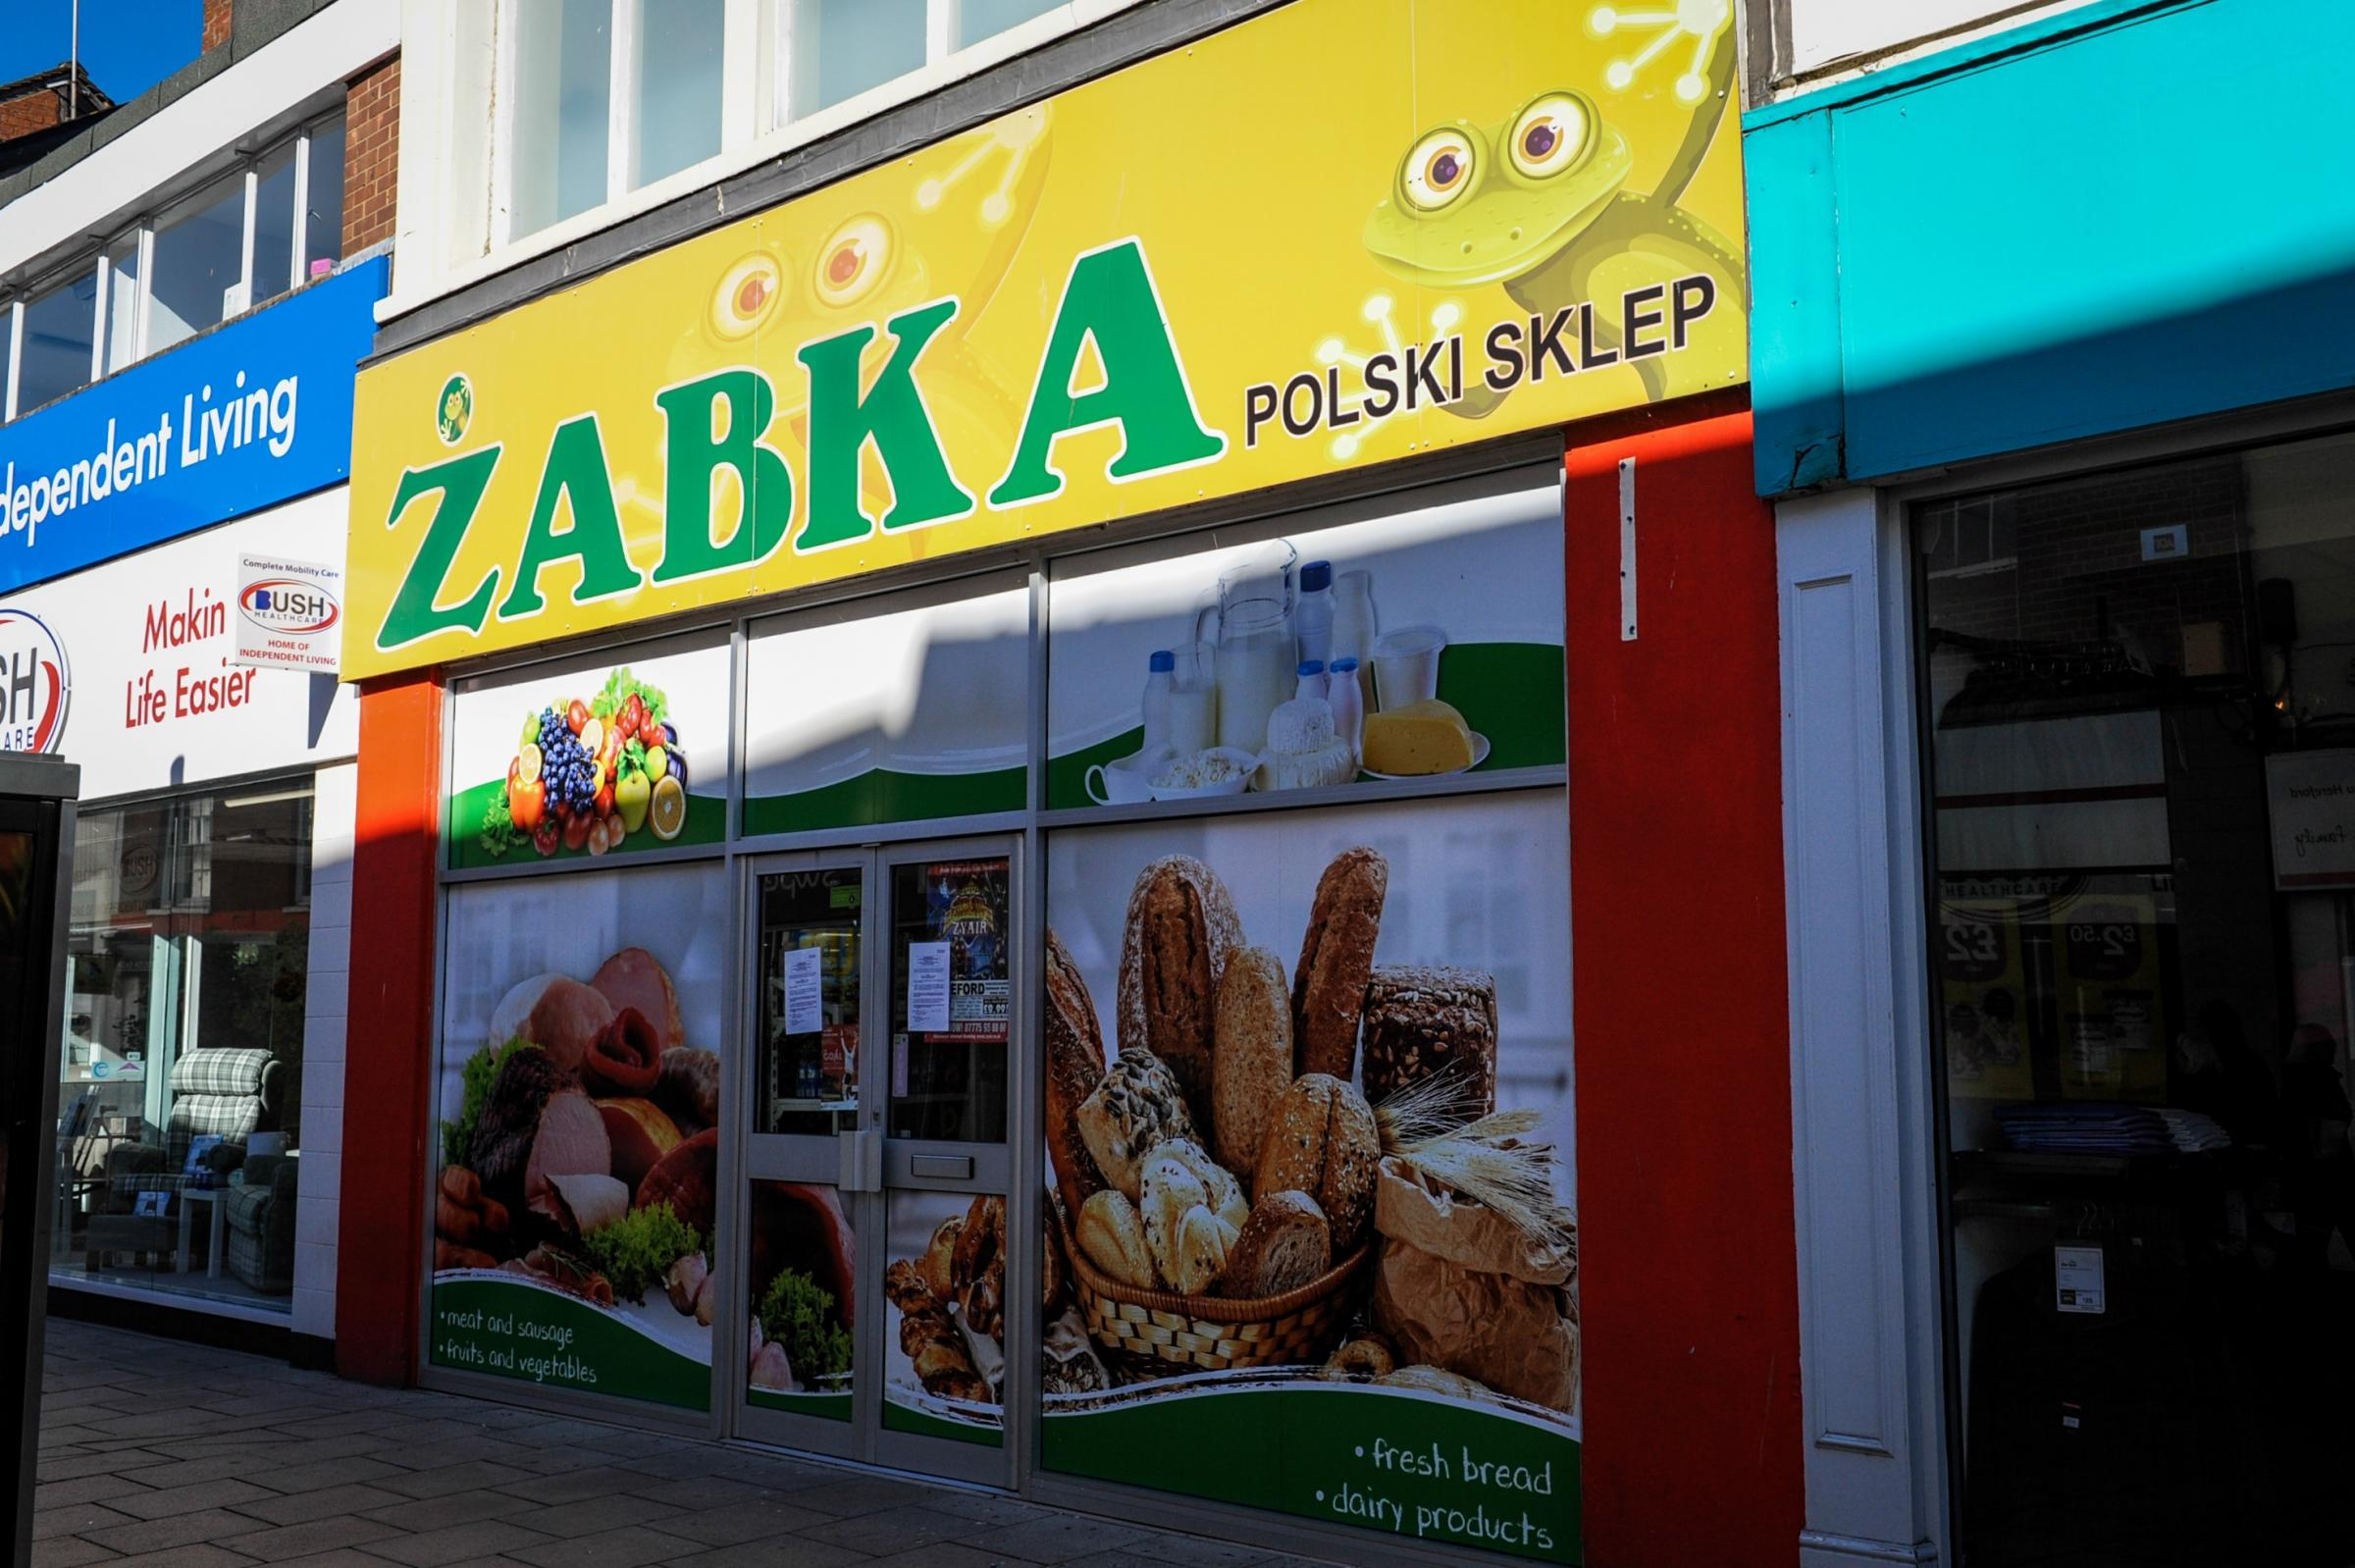 Zabka Polski Sklep on Eign Gate, Hereford, has been closed for three months after illegal cigarettes were sold from the premises.